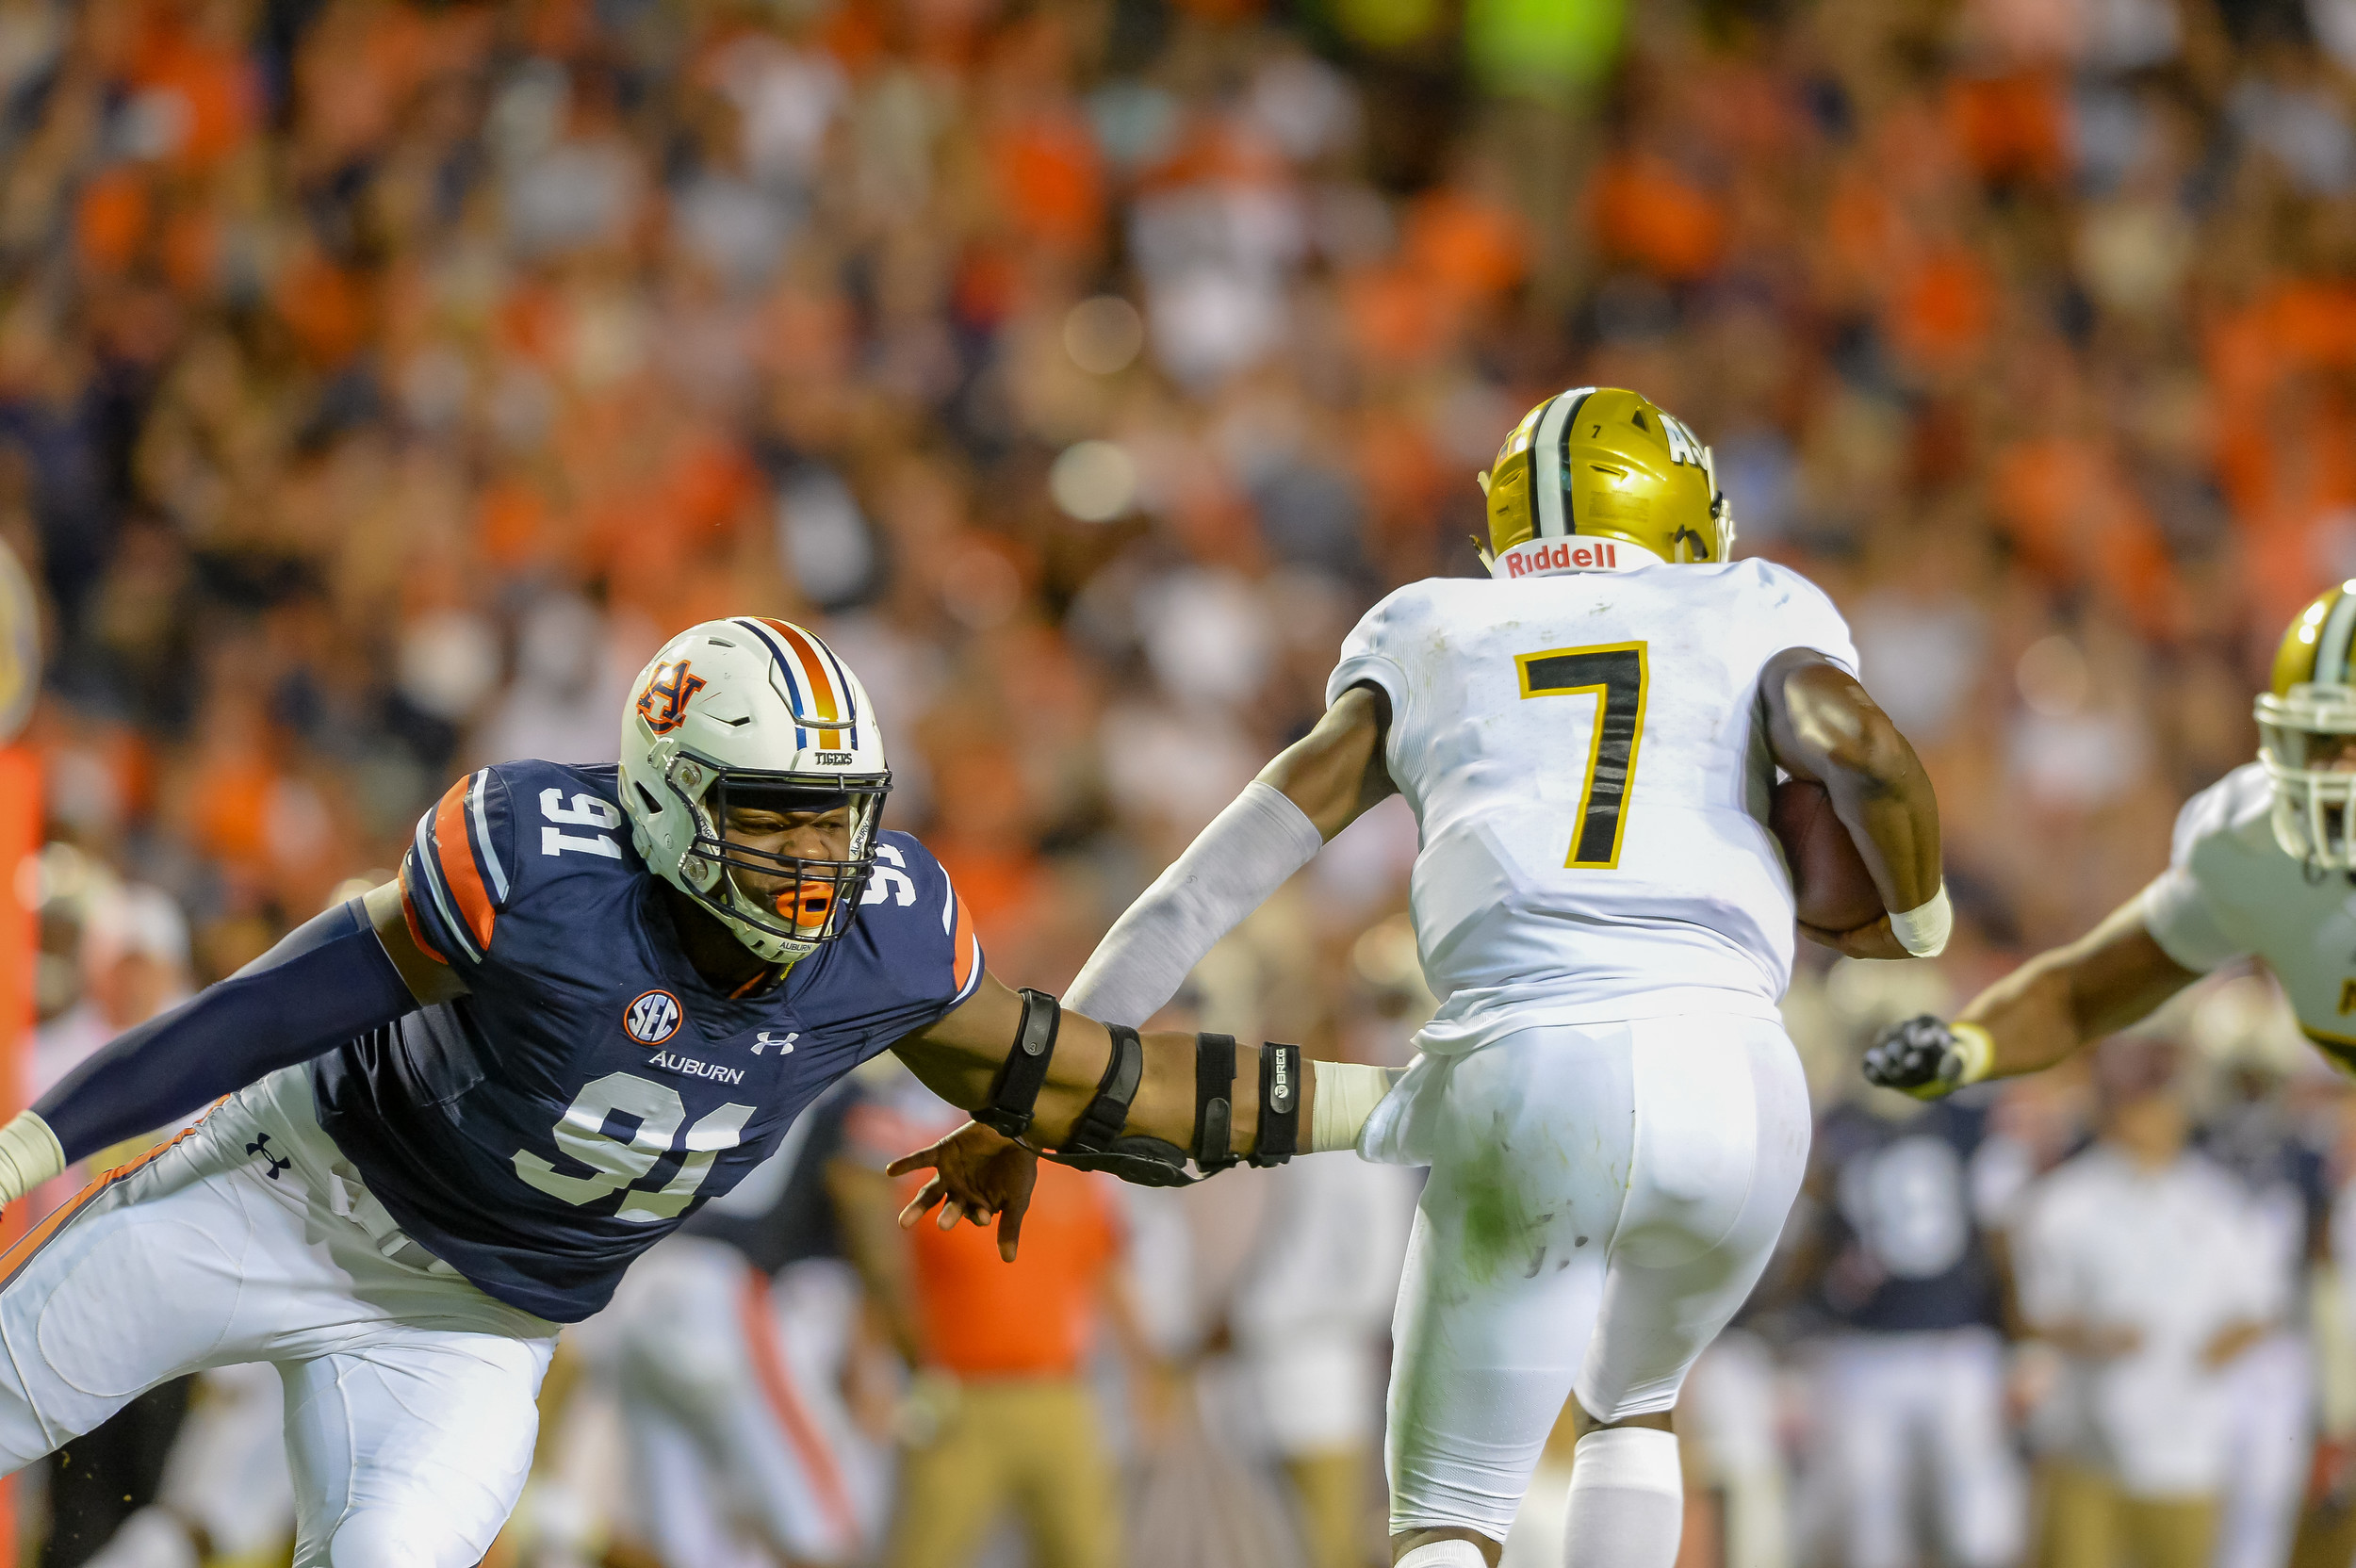 Auburn Tigers defensive lineman Nick Coe (91) pressures Alabama State Hornets quarterback Darryl Pearson Jr. (7) during the first half of Saturday's game, at Jordan Hare Stadium in Auburn, AL. (Contributed by Jeff Johnsey)